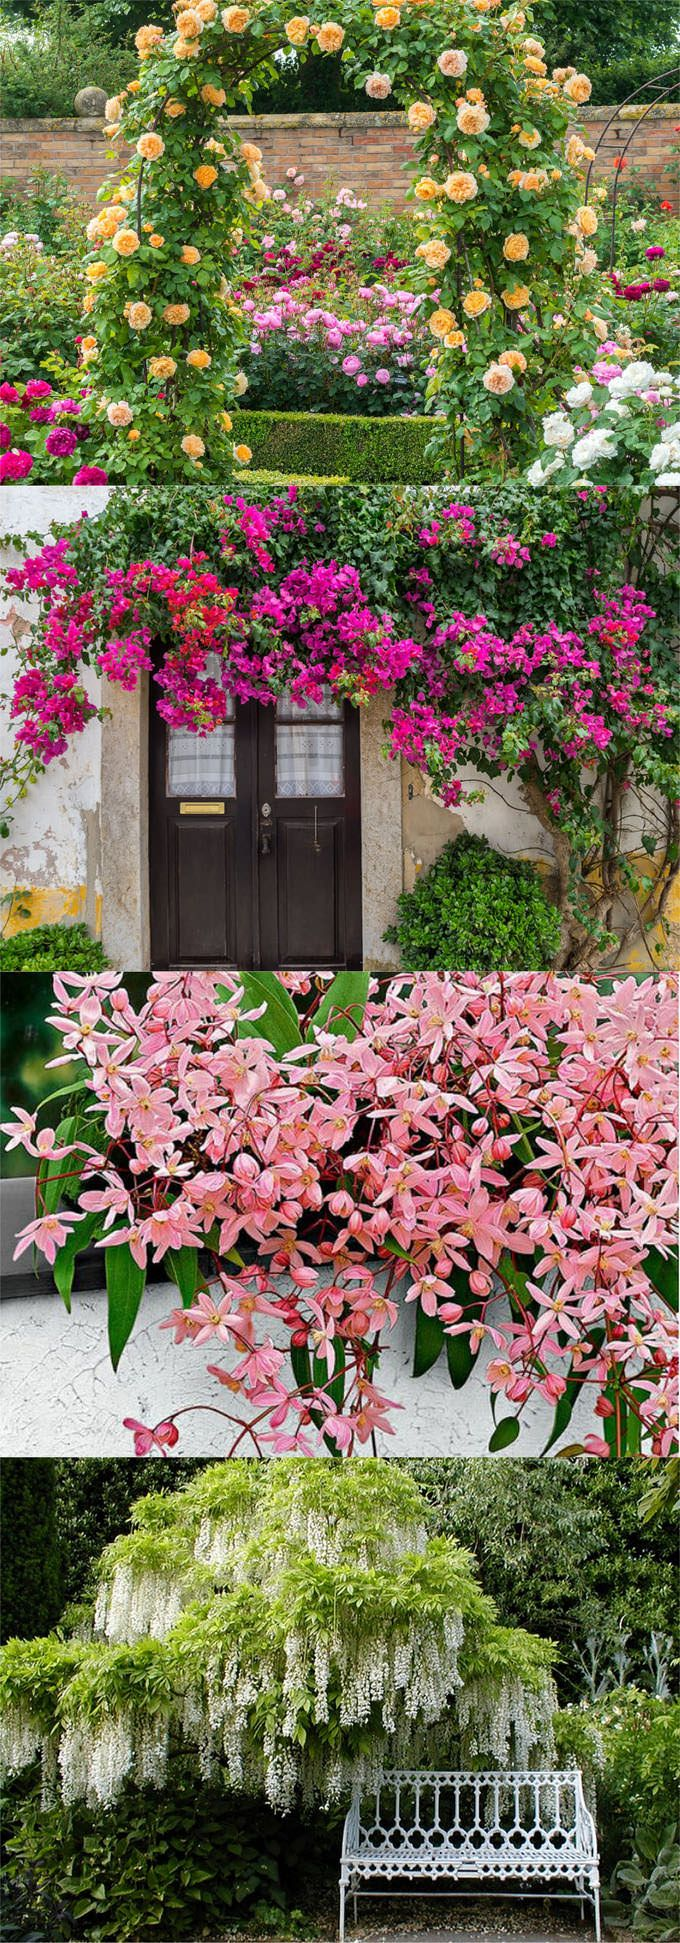 883 best images about garden paths on pinterest shade garden - 20 Favorite Flowering Vines For The Fence And Arbor